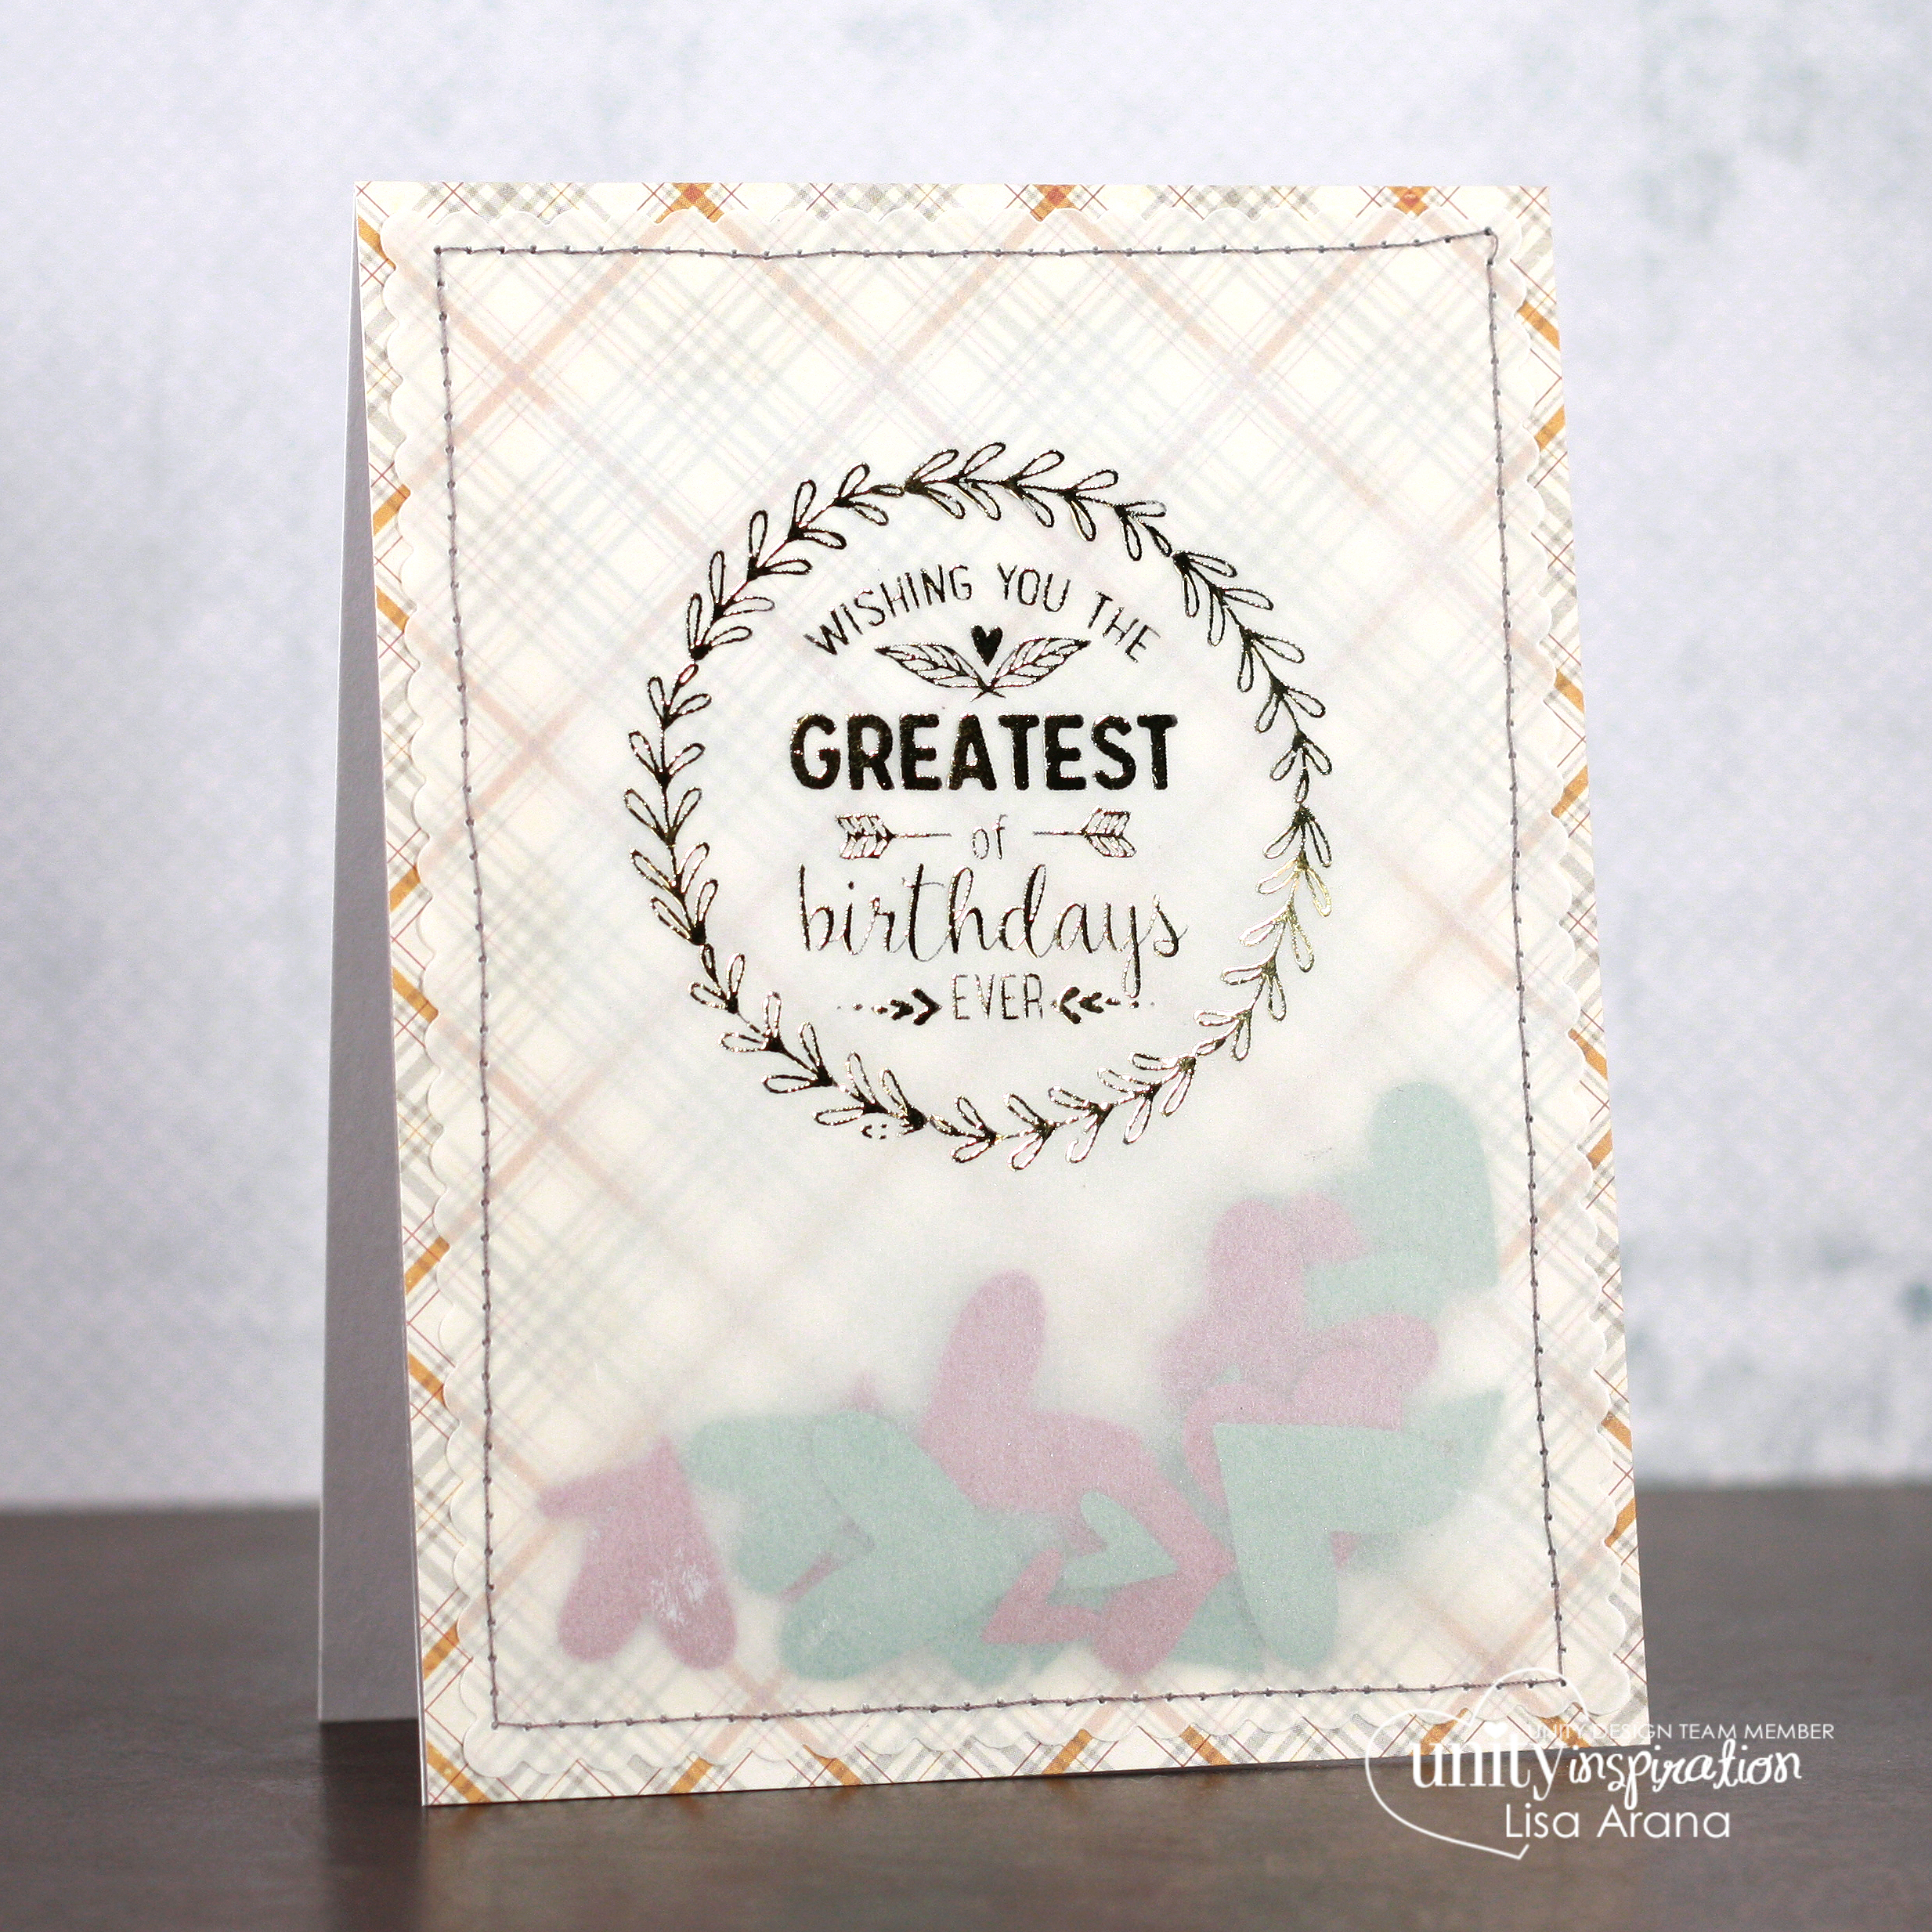 dahlhouse designs | 8.2015 greatest birthday